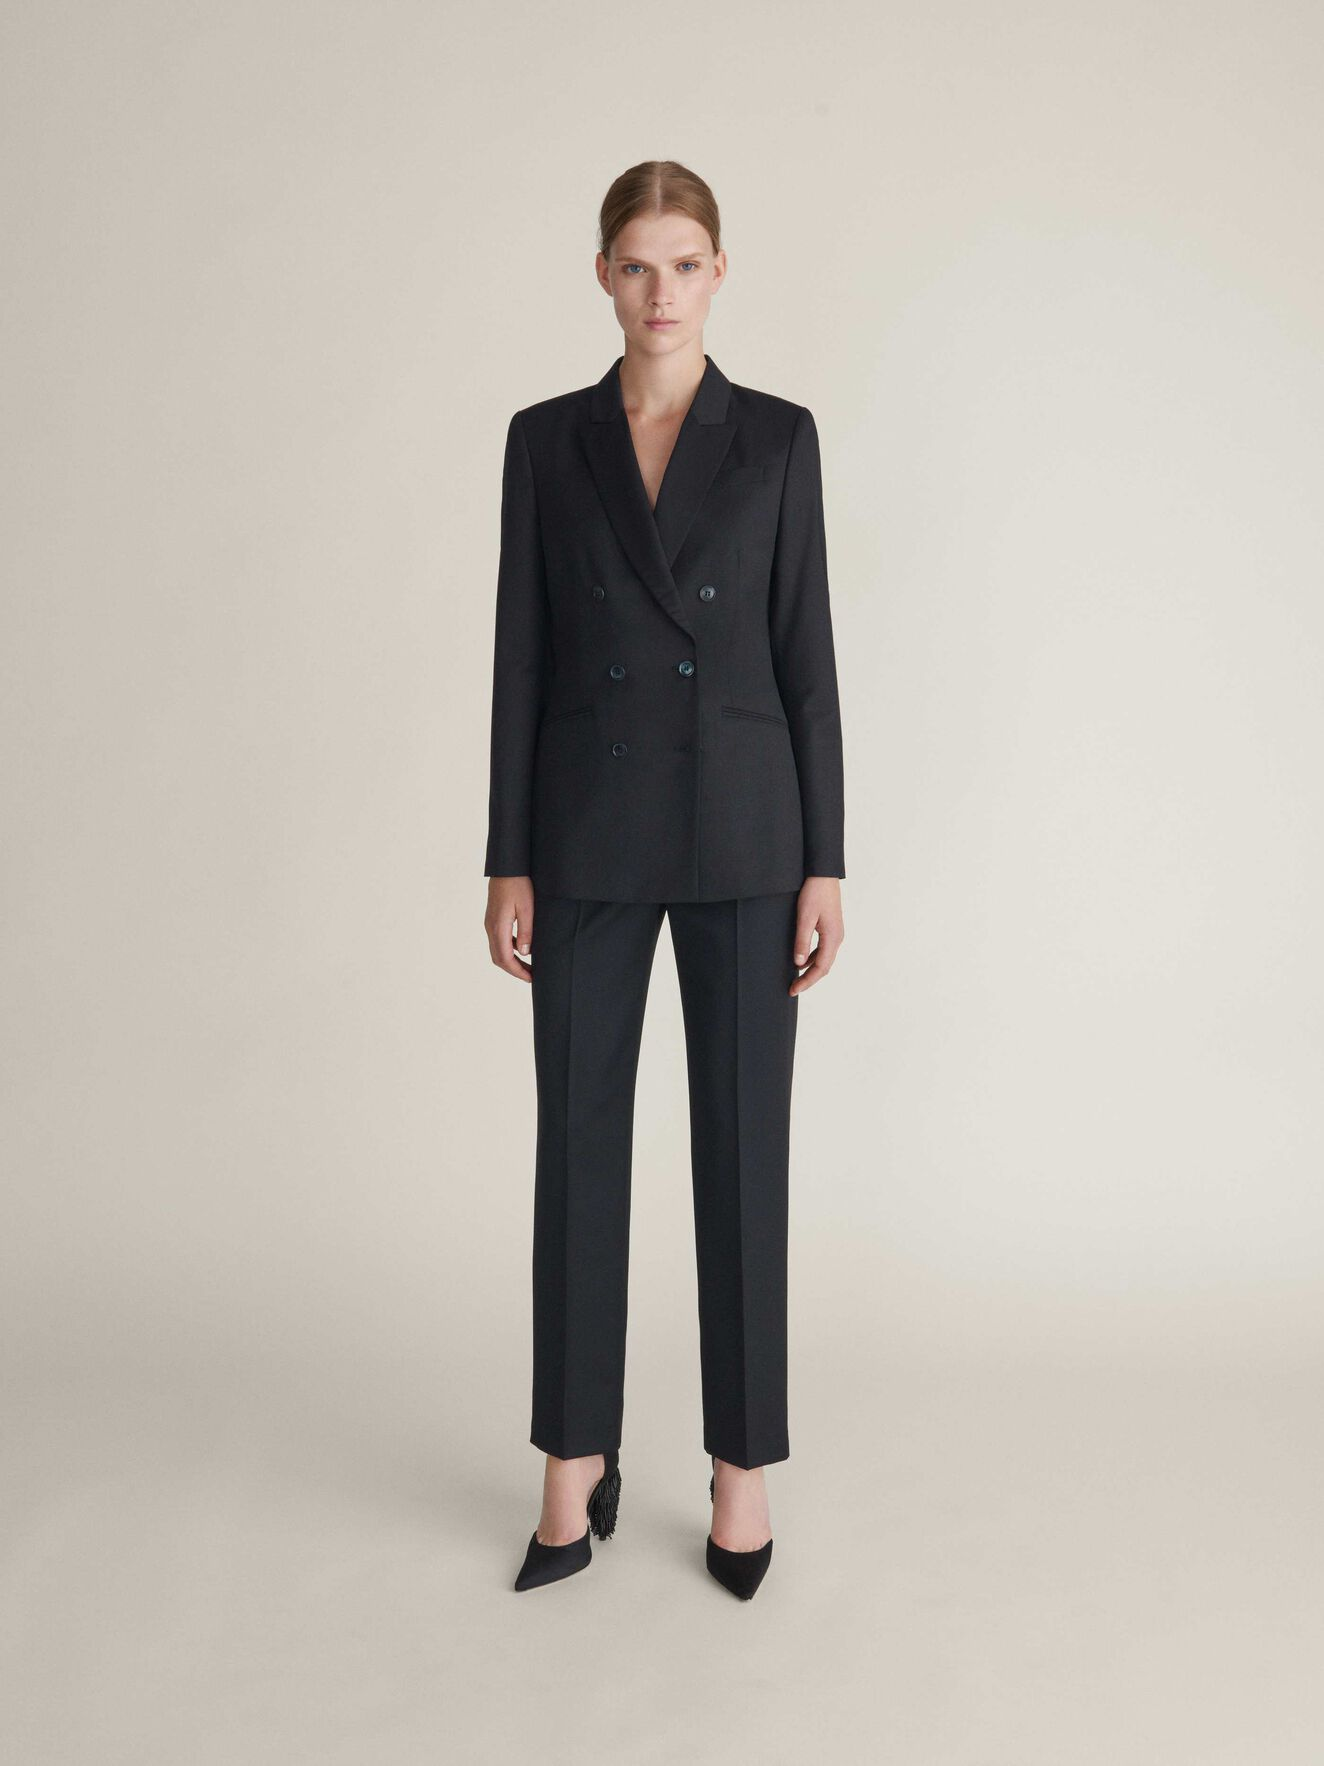 Ansley Suit in  from Tiger of Sweden